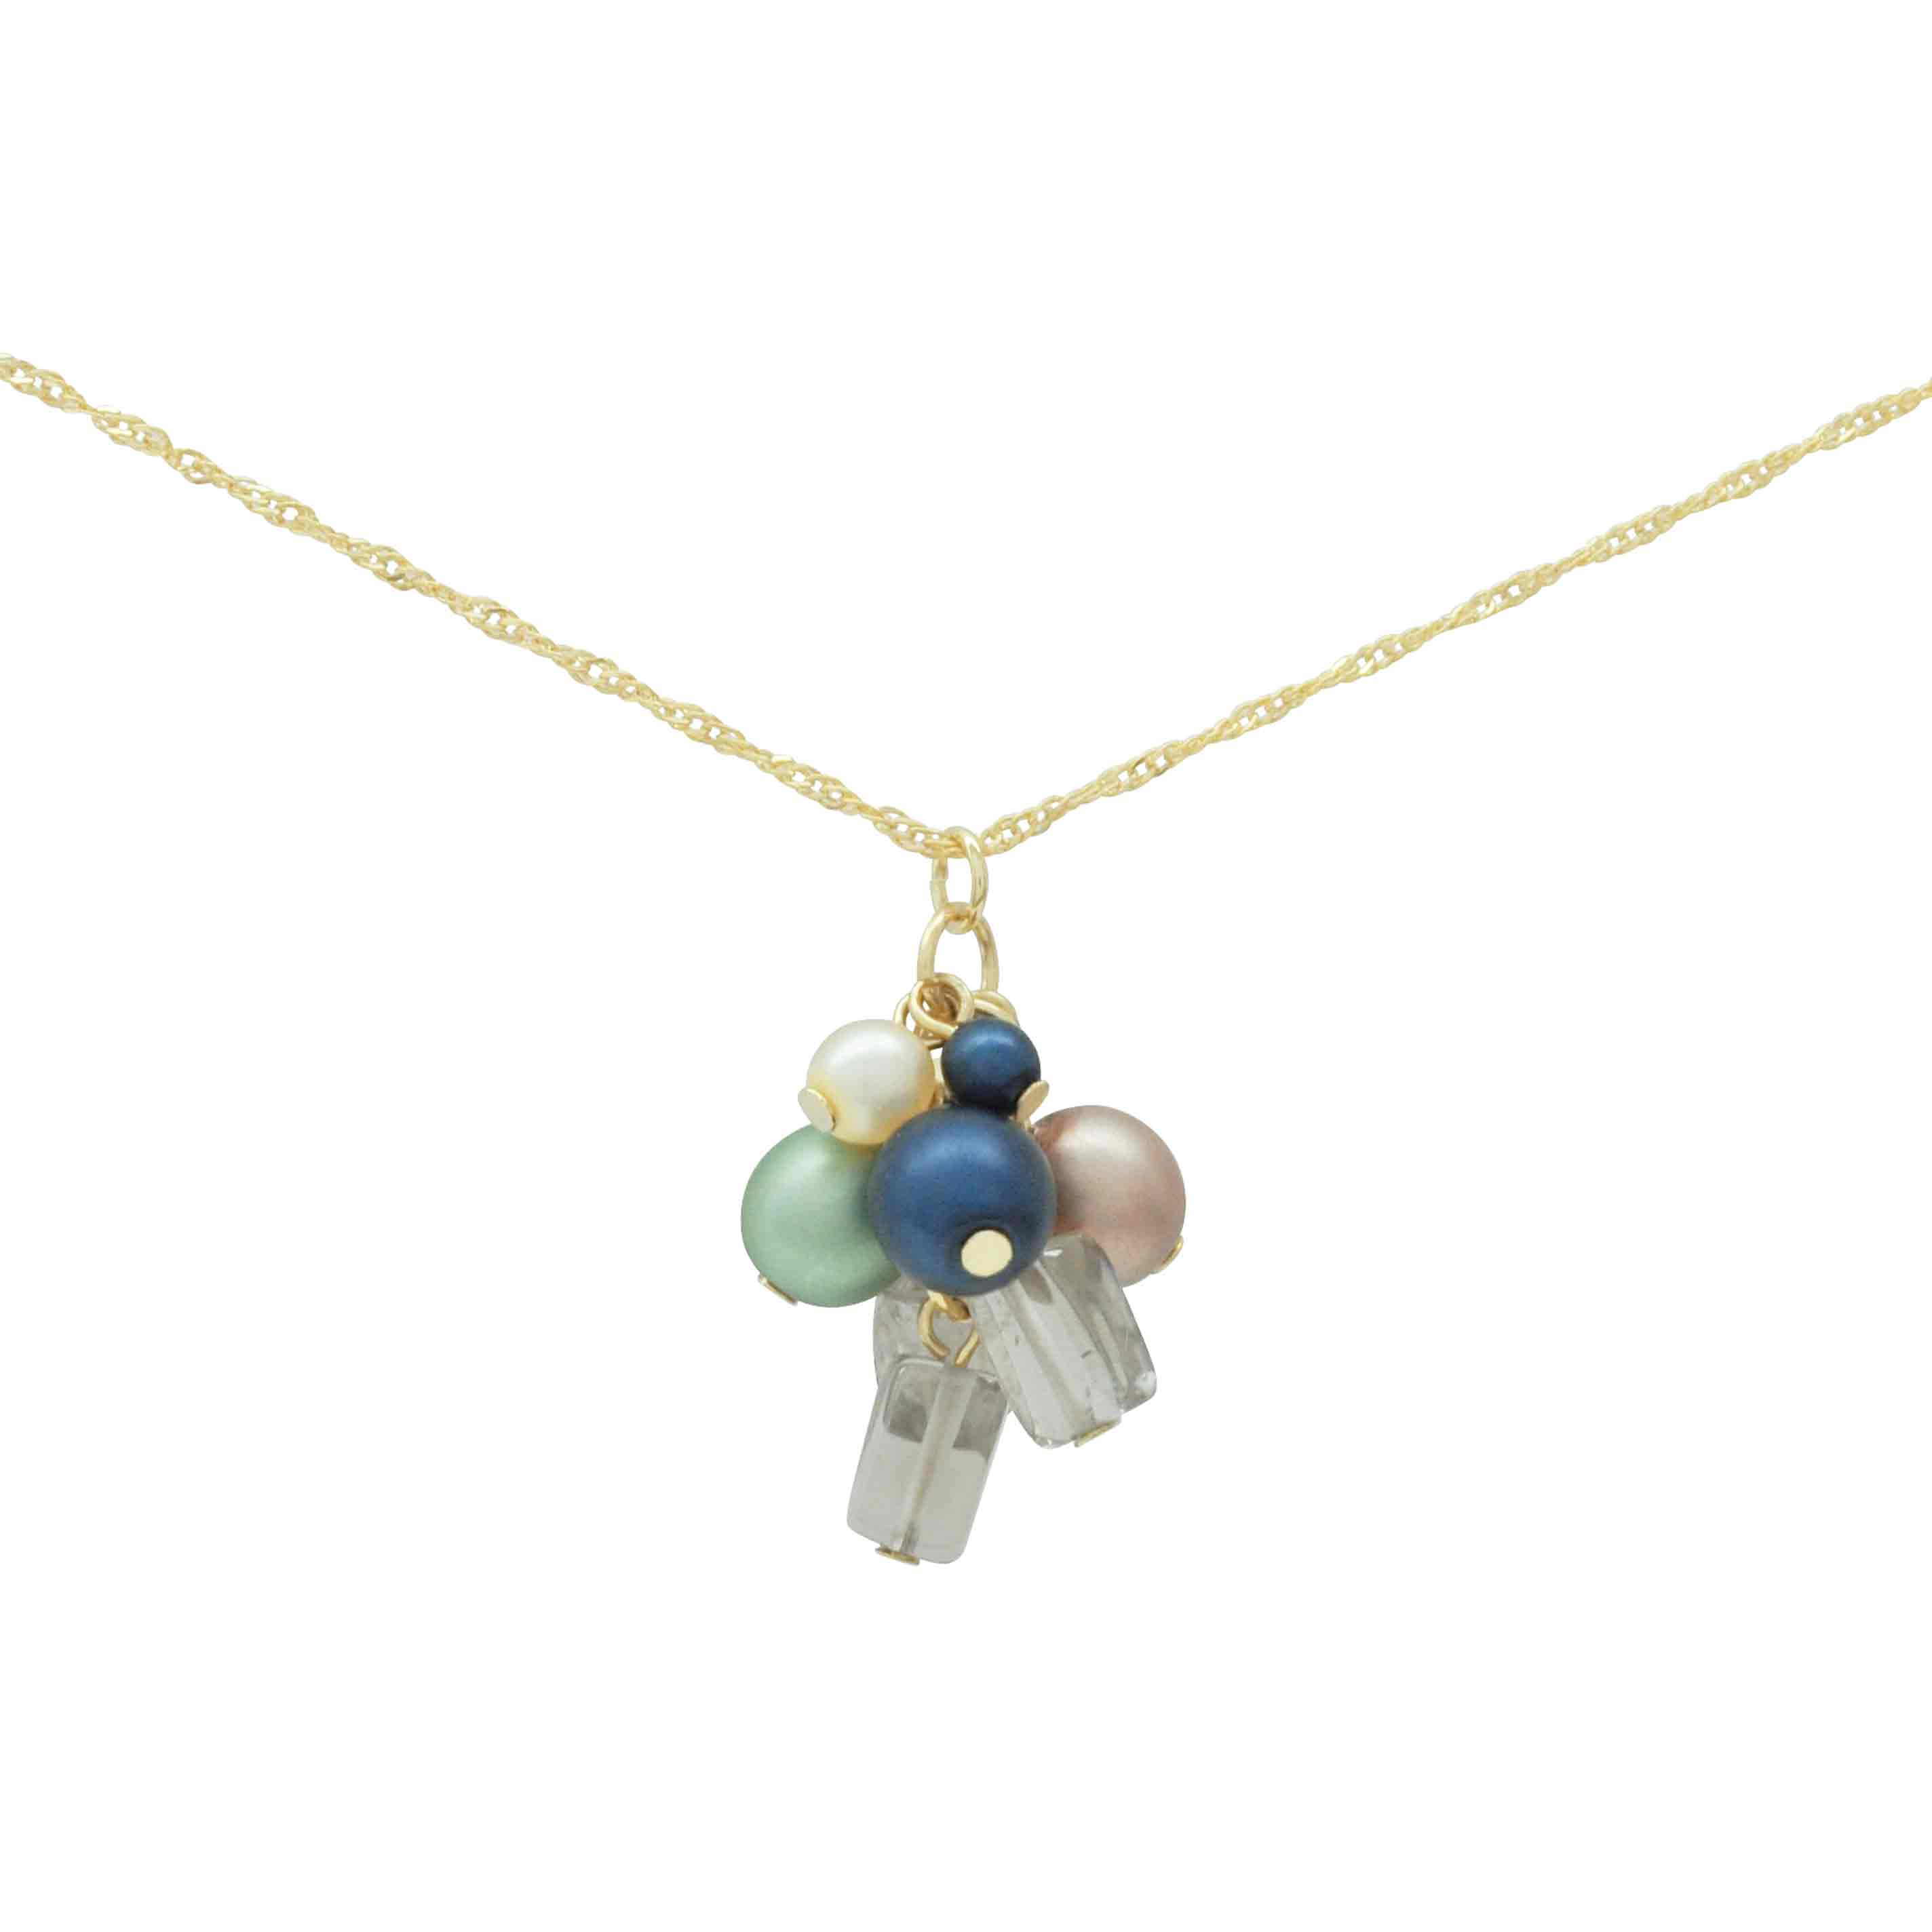 NECKLACE-n1800s003画像